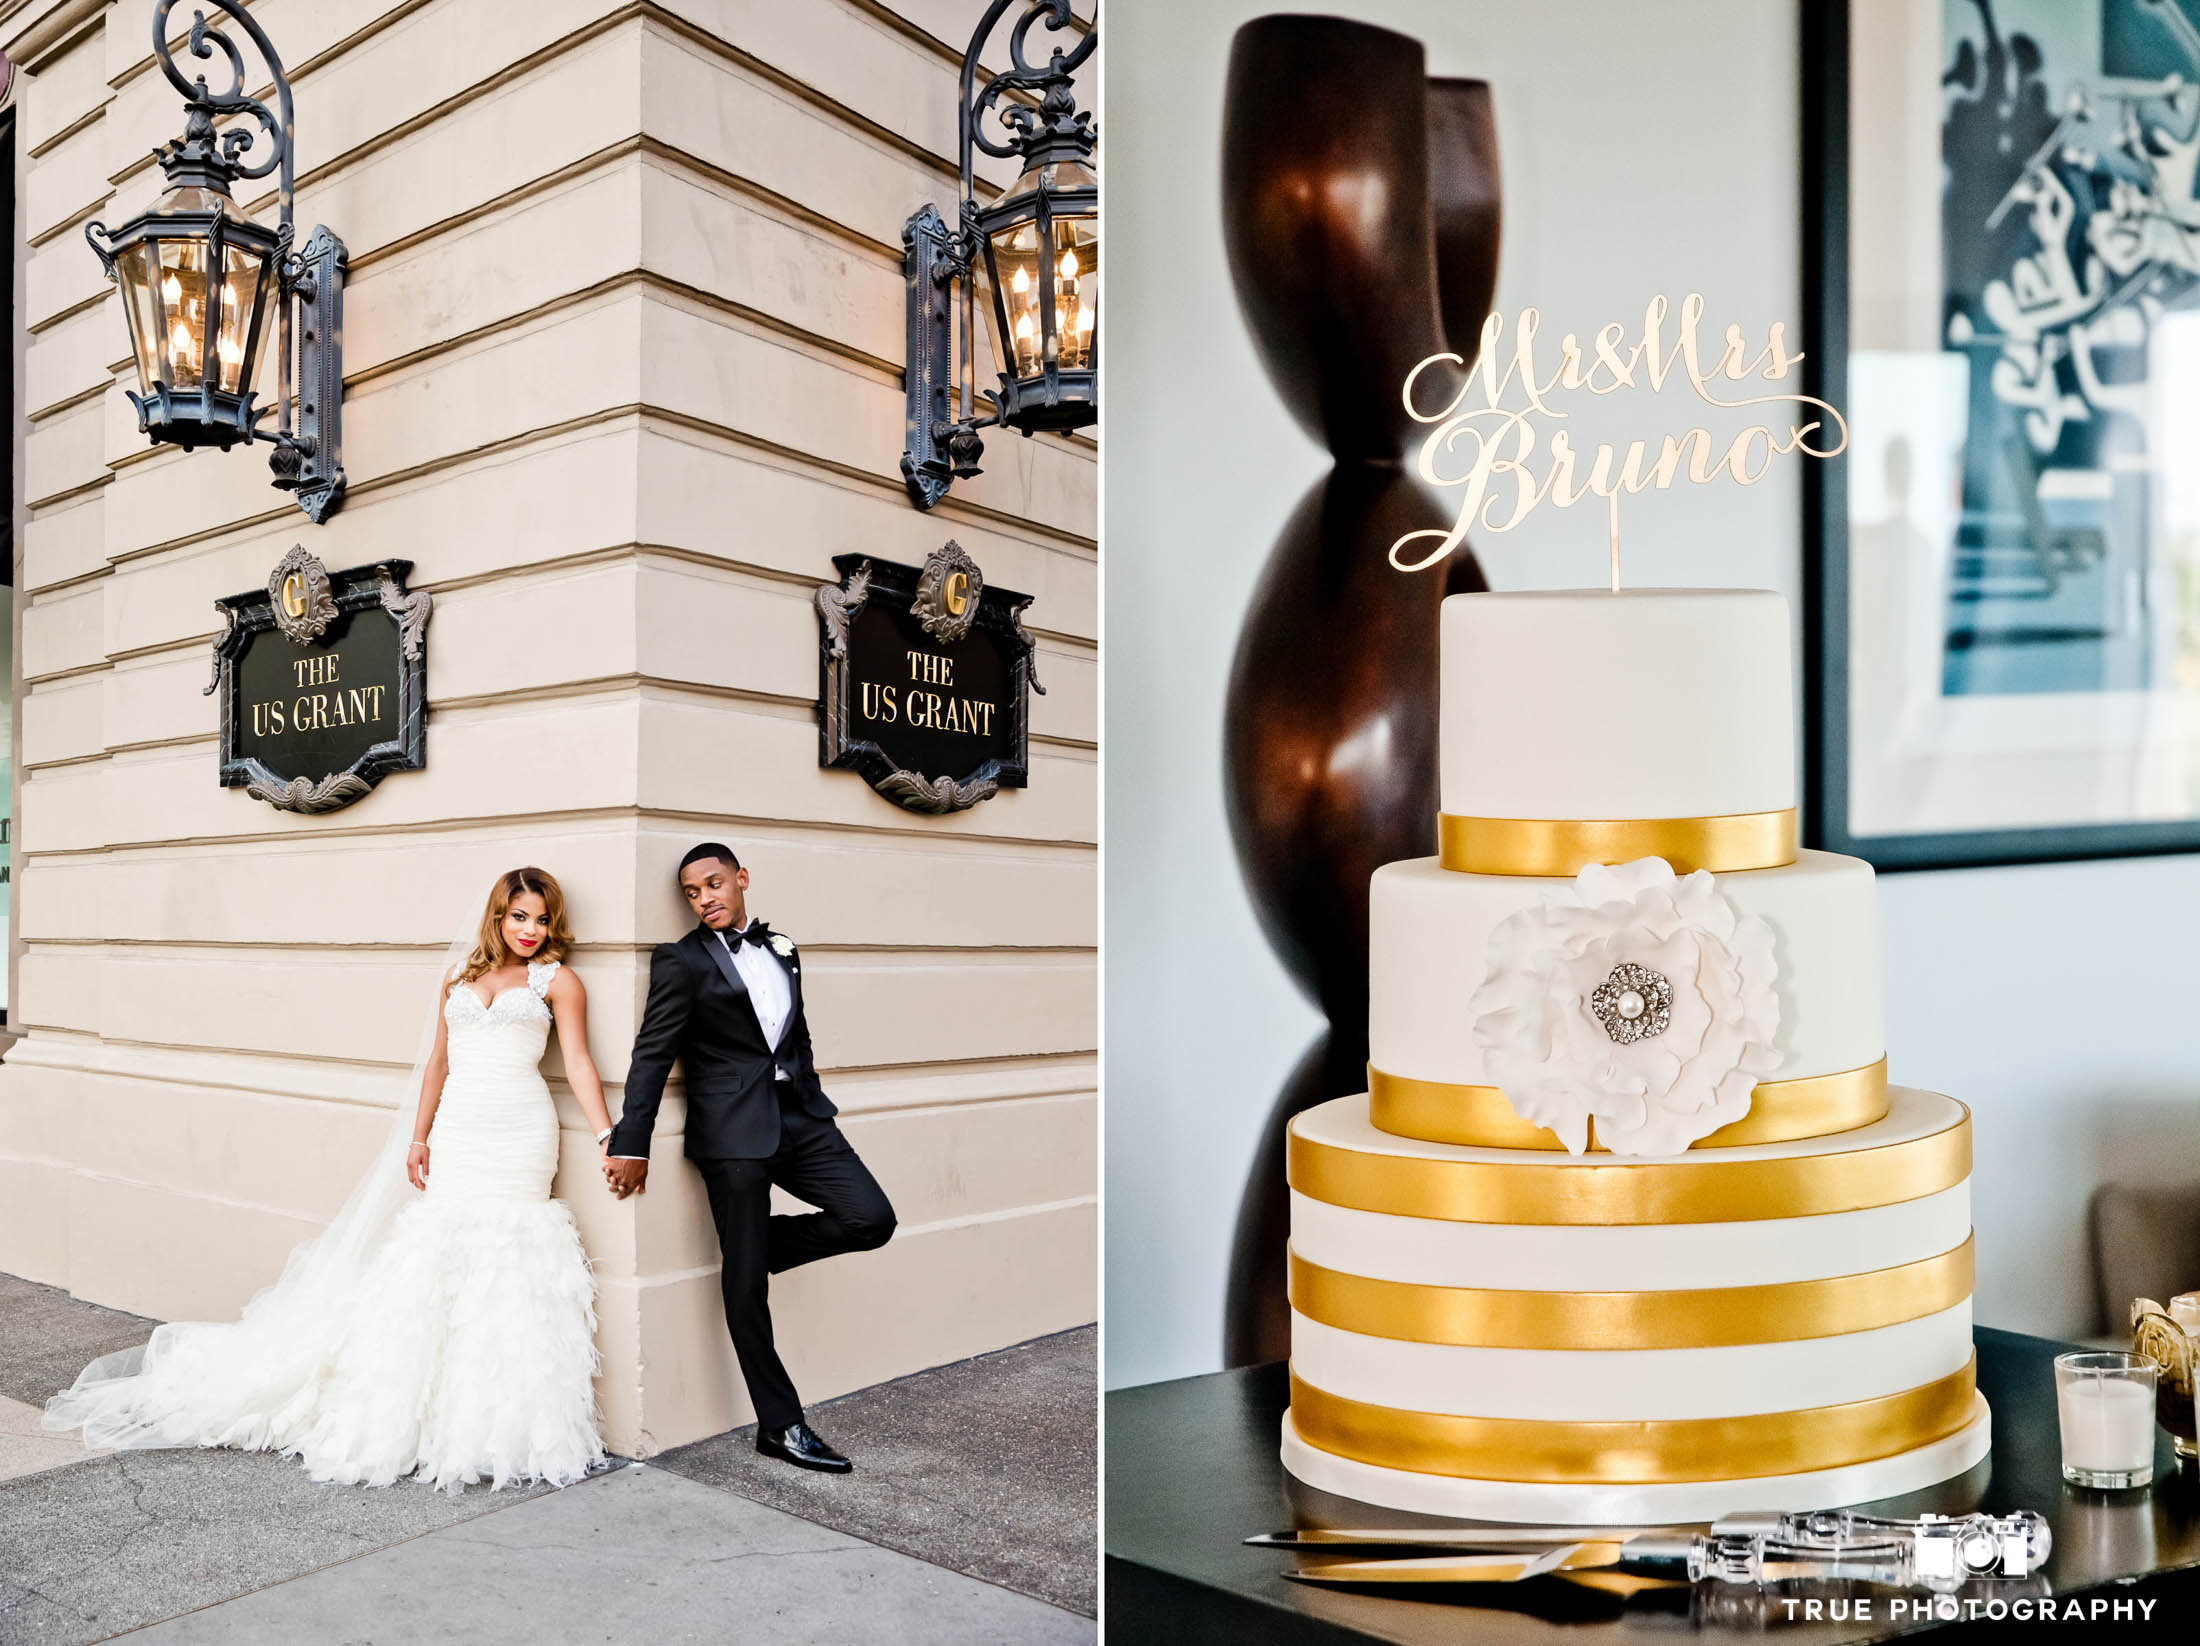 Classic Wedding Couple and Gold Cake at US Grant